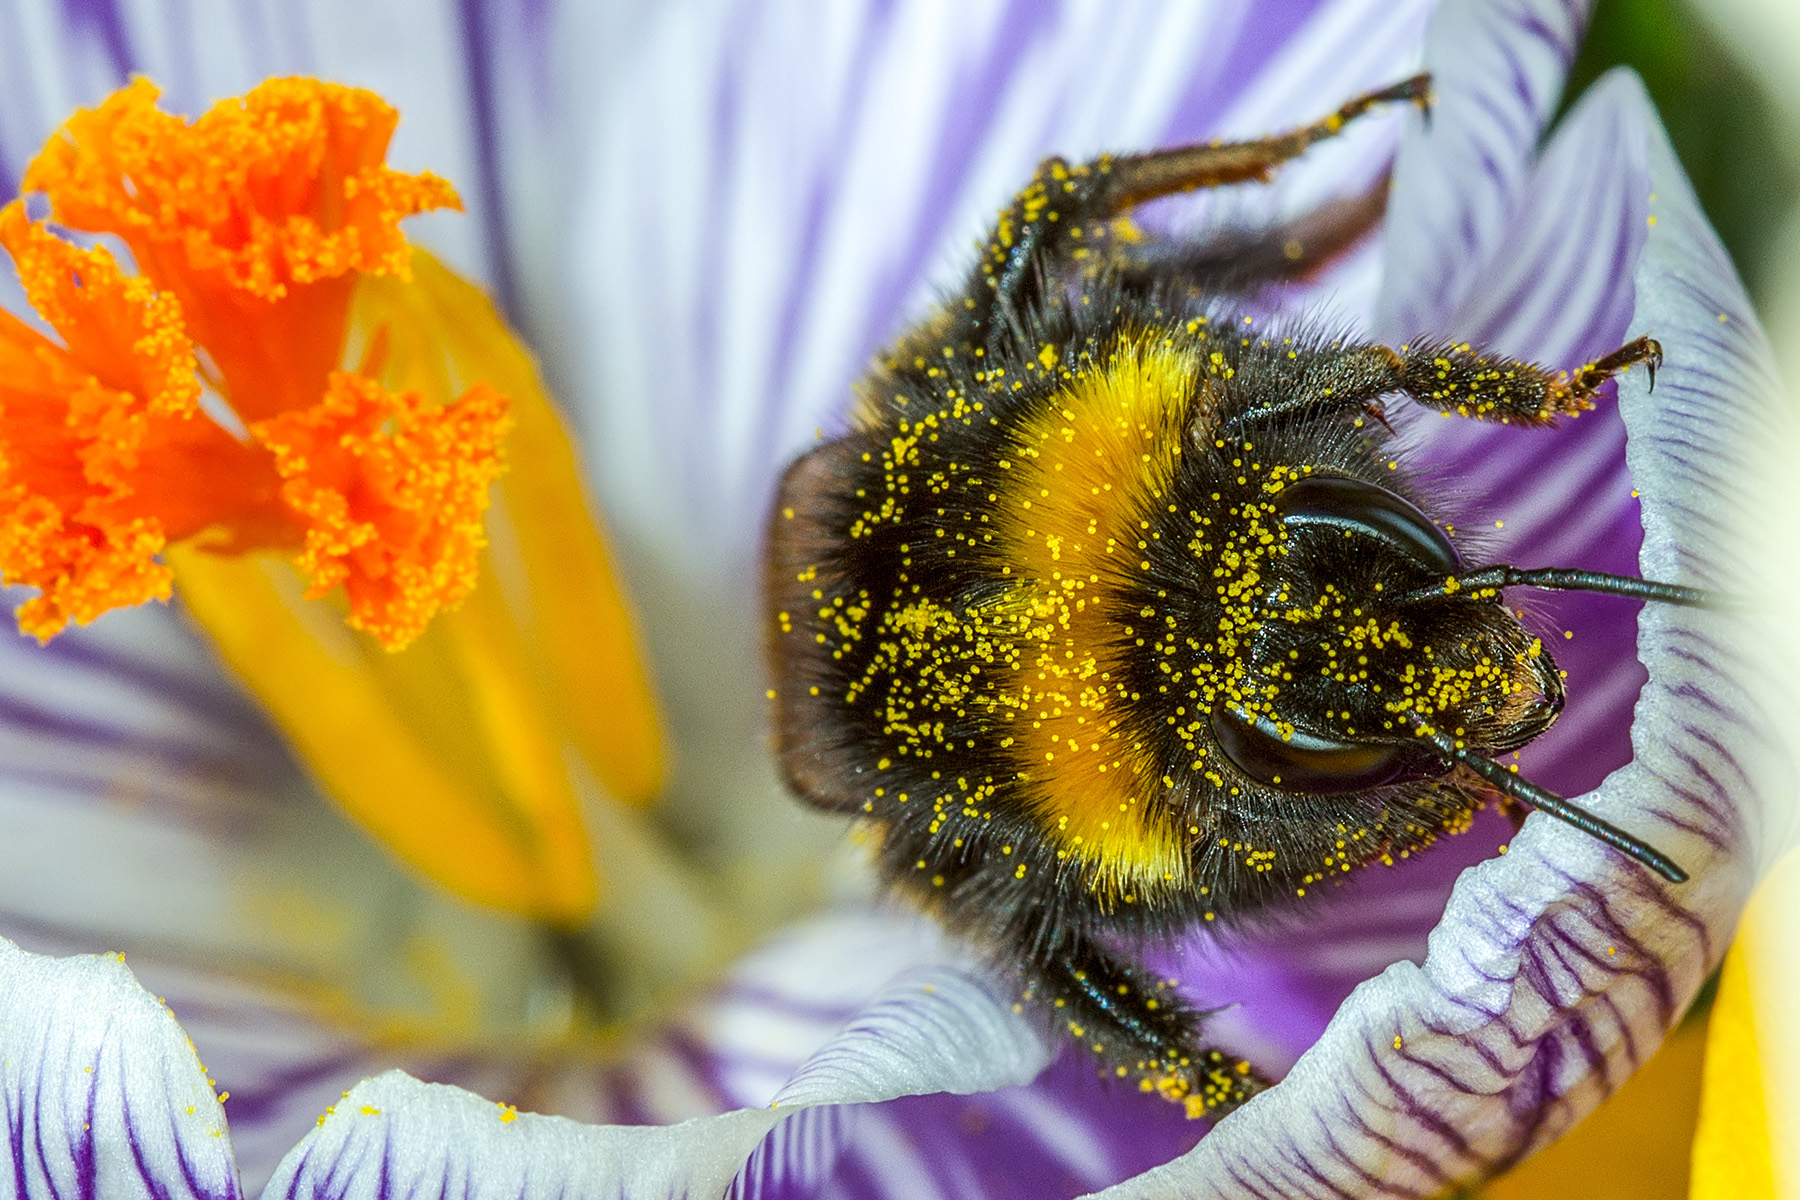 Population Genomics of Pollinating Insects